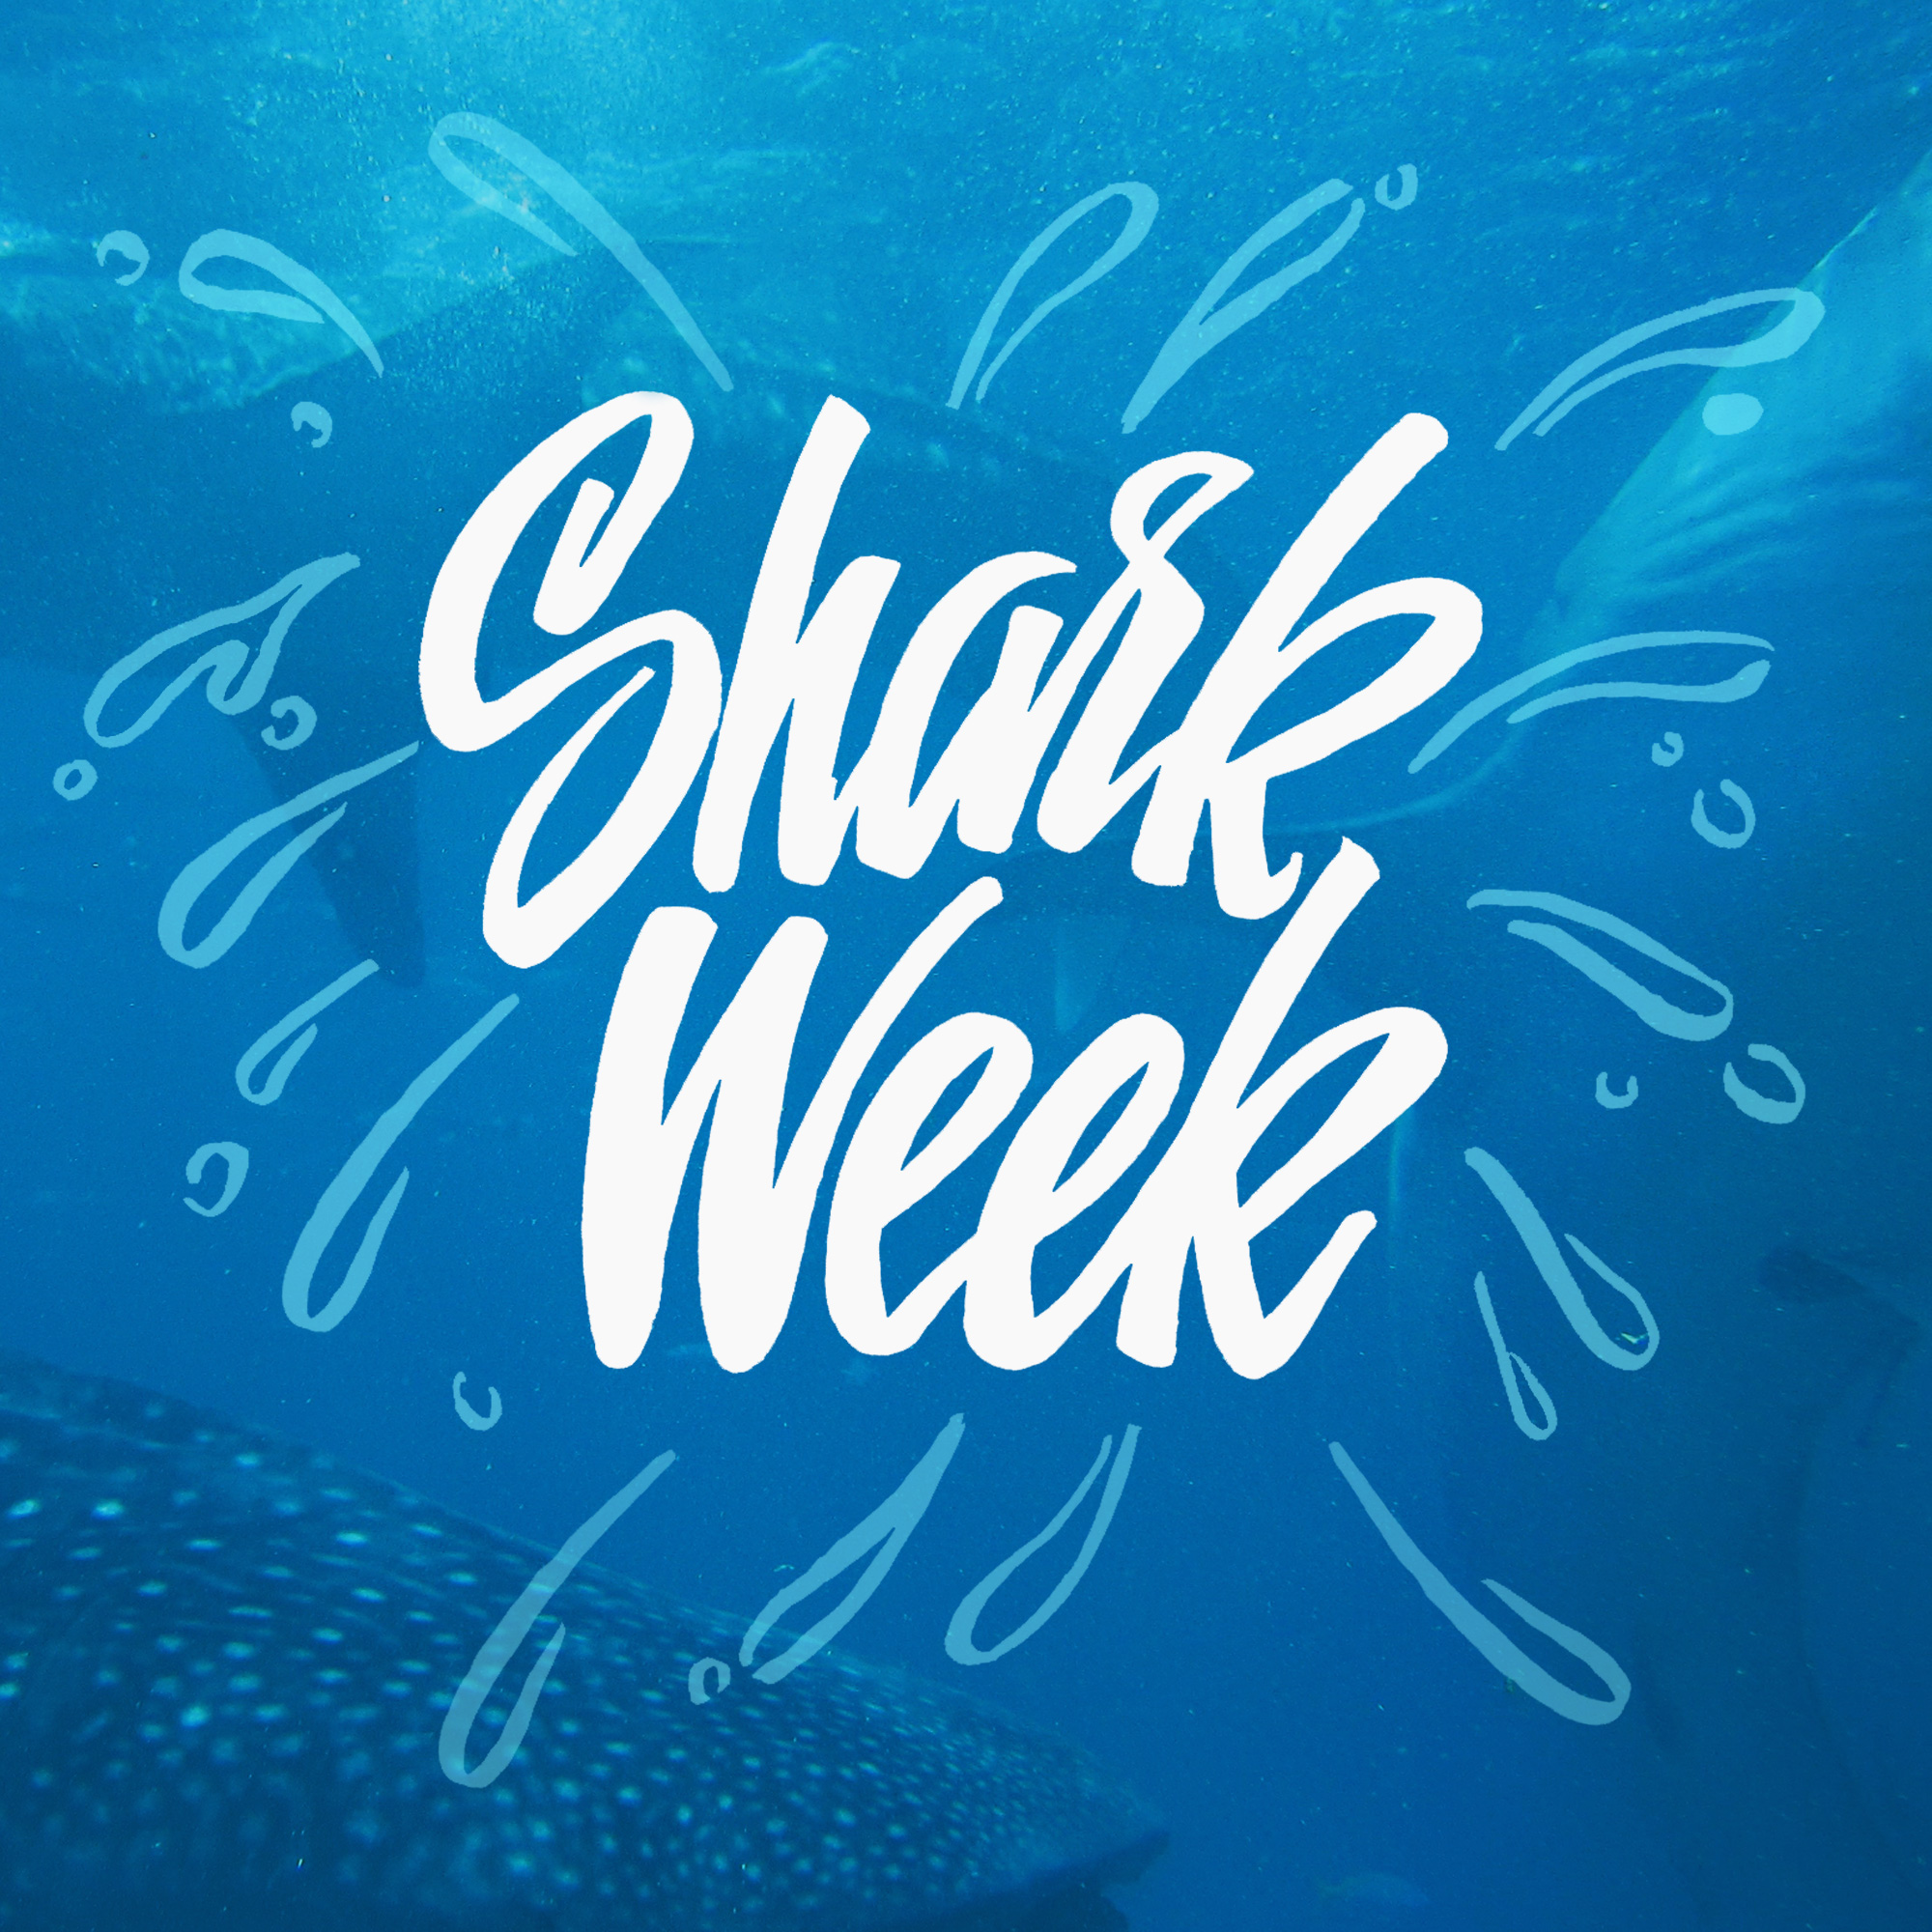 shark week by johnsuder.jpg